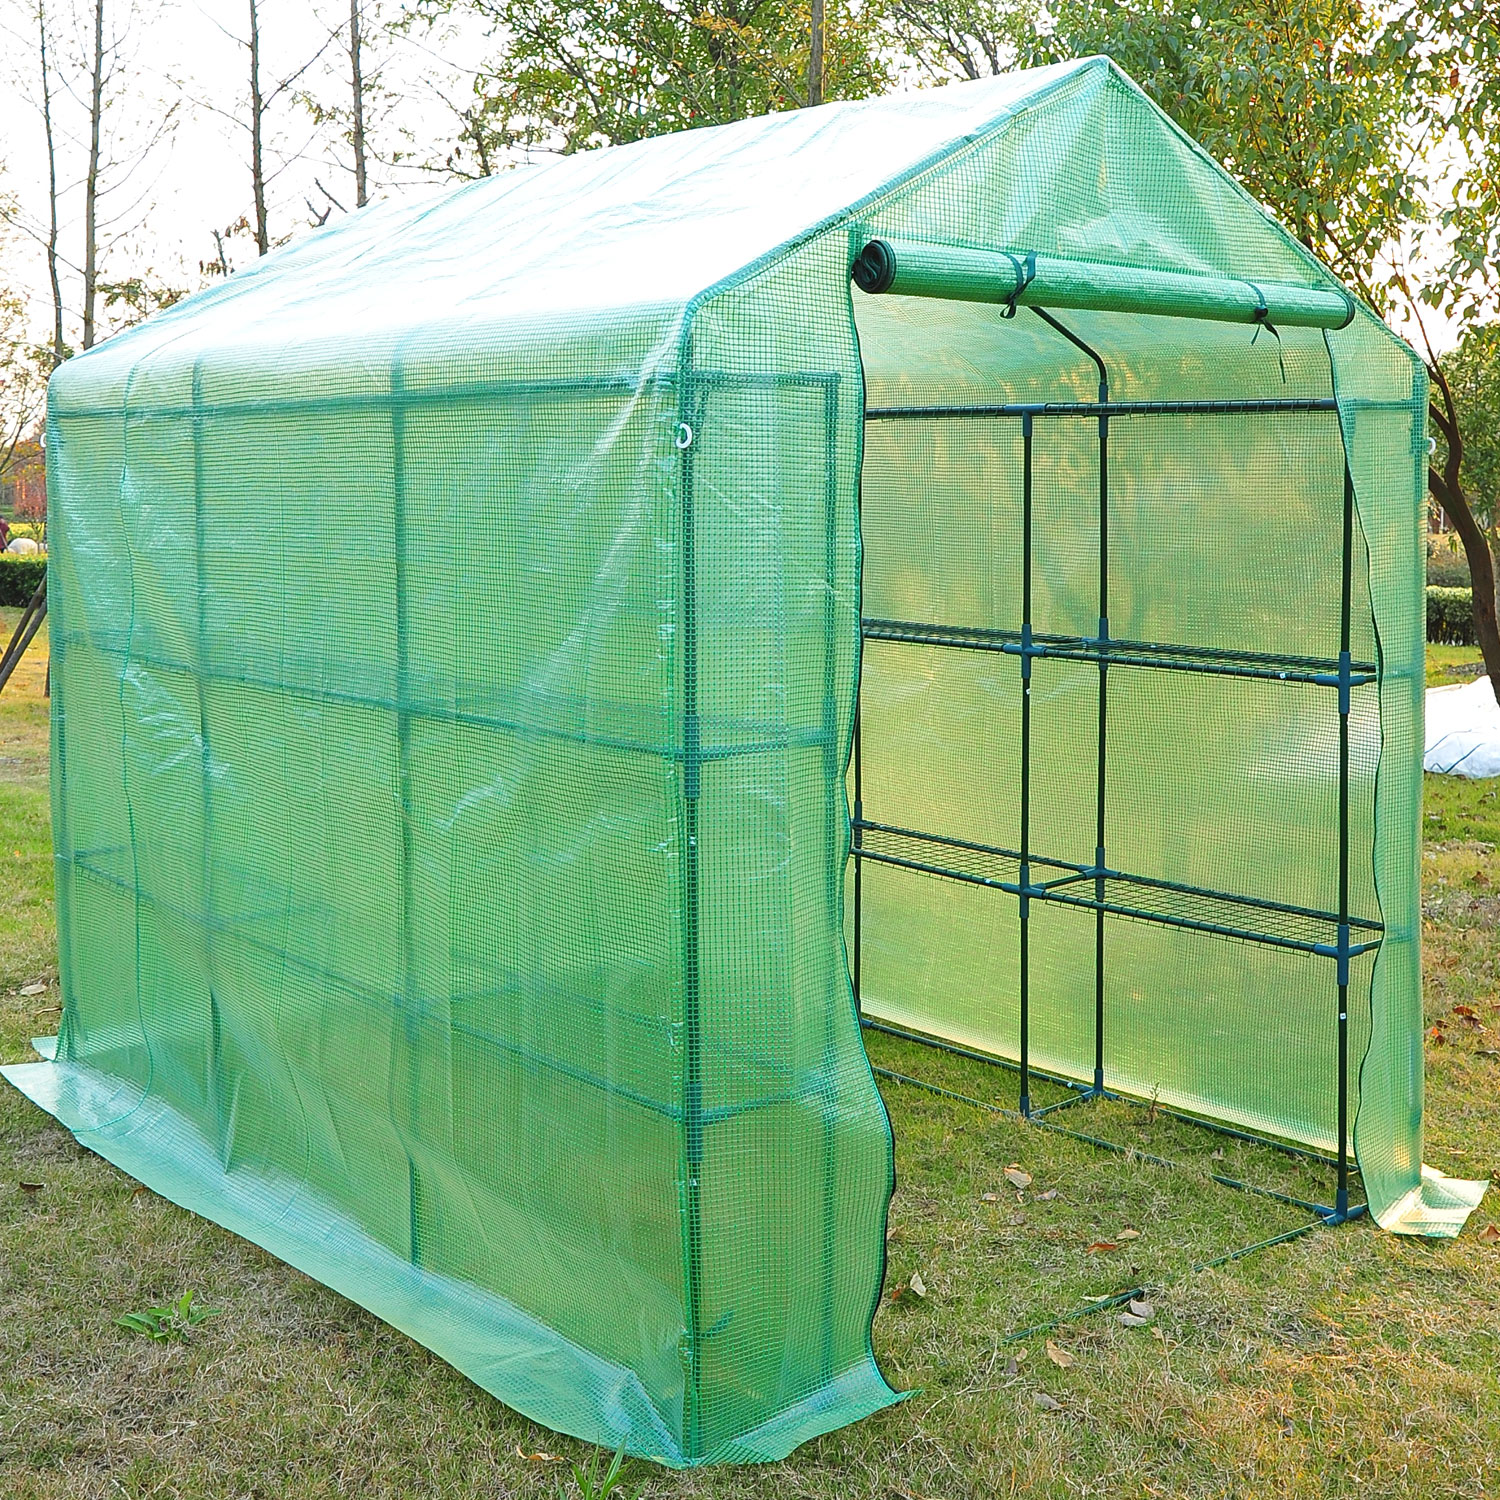 8u0027 X 6u0027 X 7u0027 Outdoor Portable Large Greenhouse / Hot House   Walmart.com